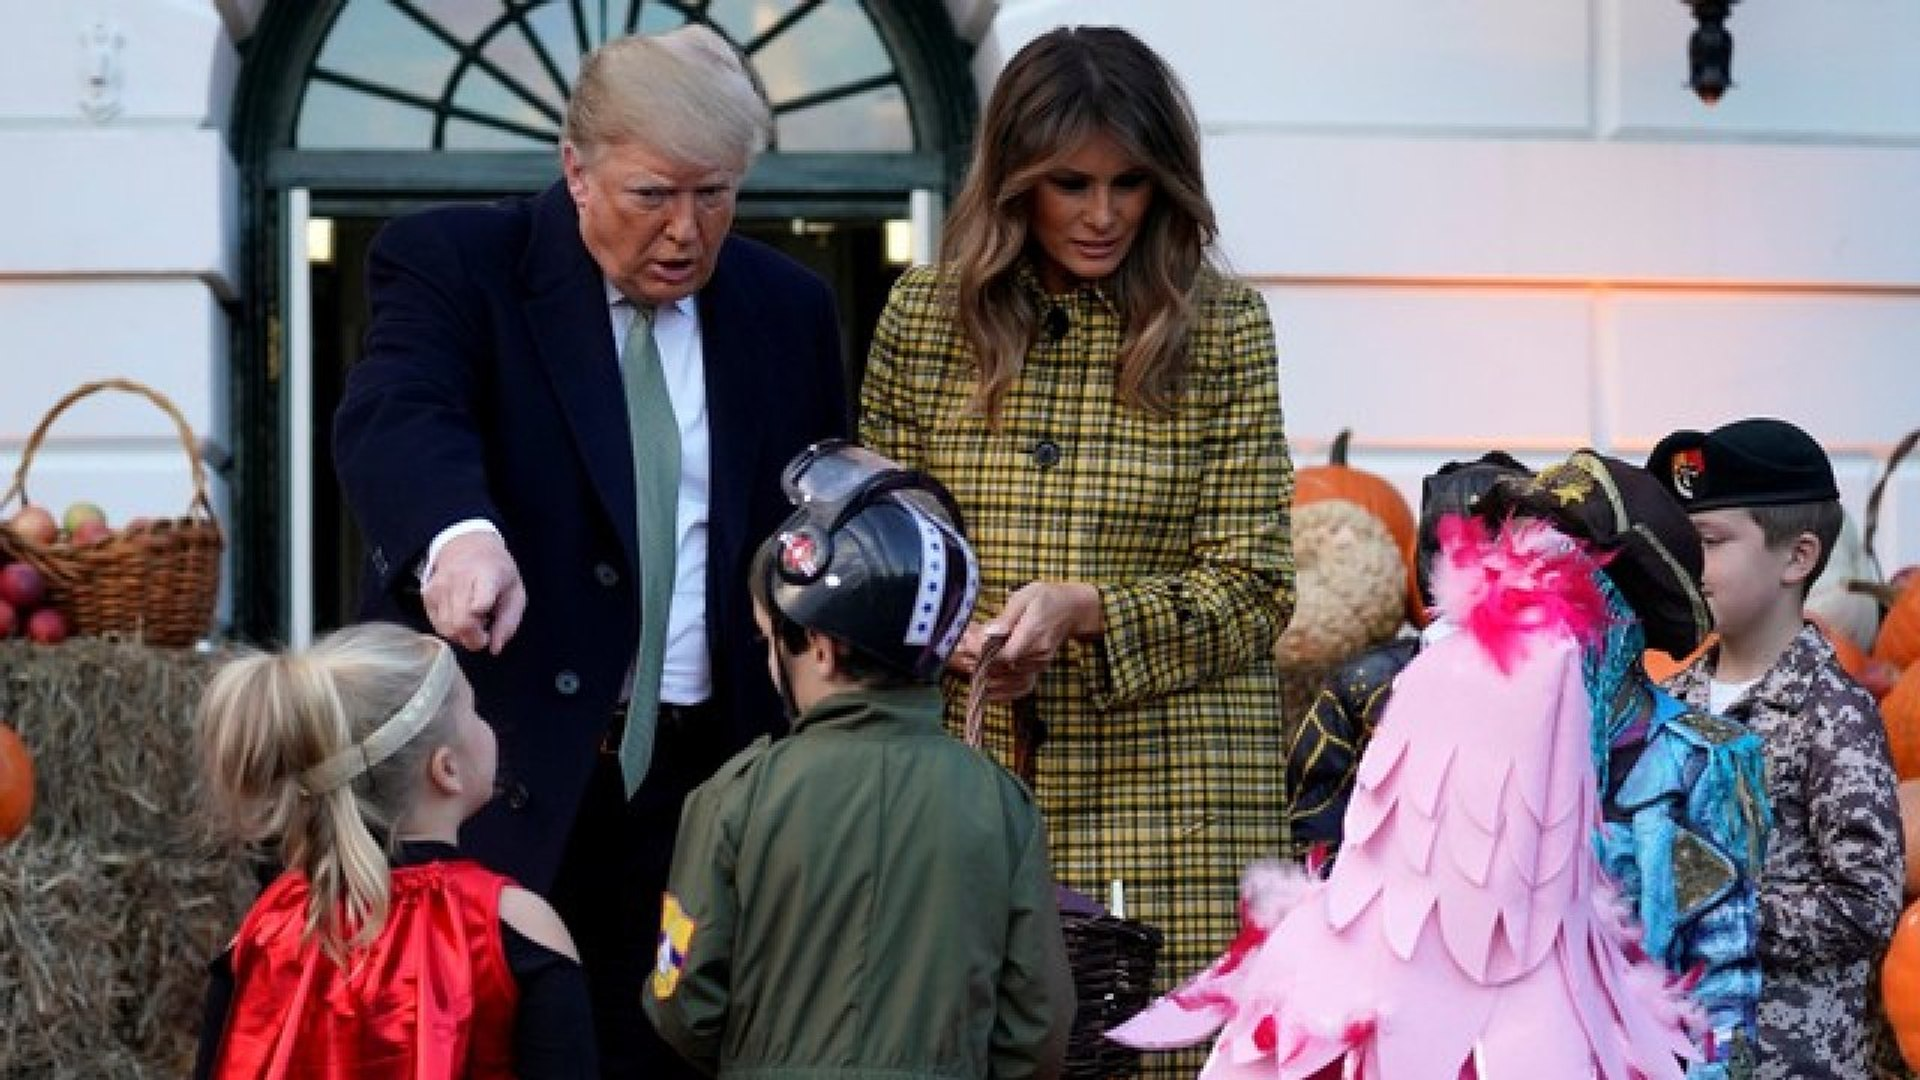 President Trump And First Lady Melania Trump Hand Out Halloween Candy